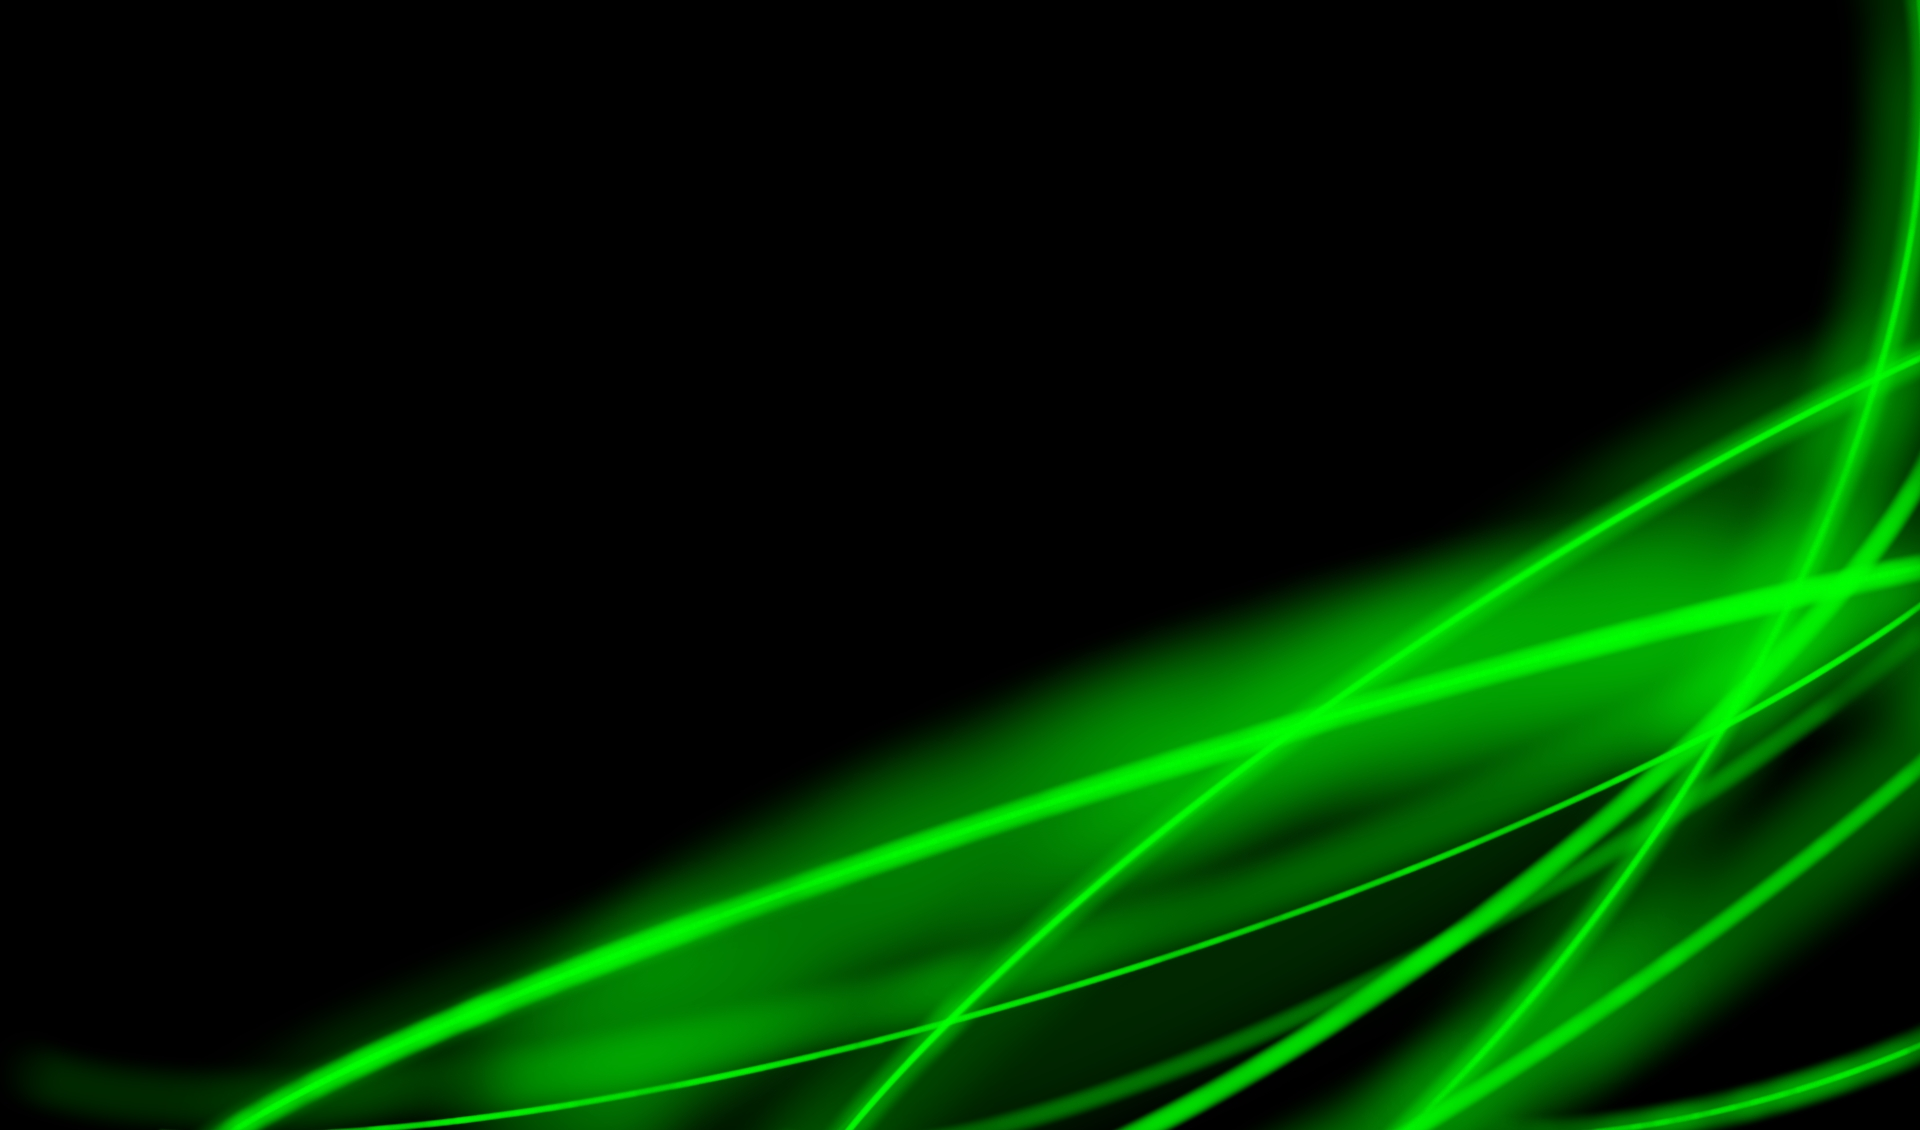 Neon Green Wallpaper Background